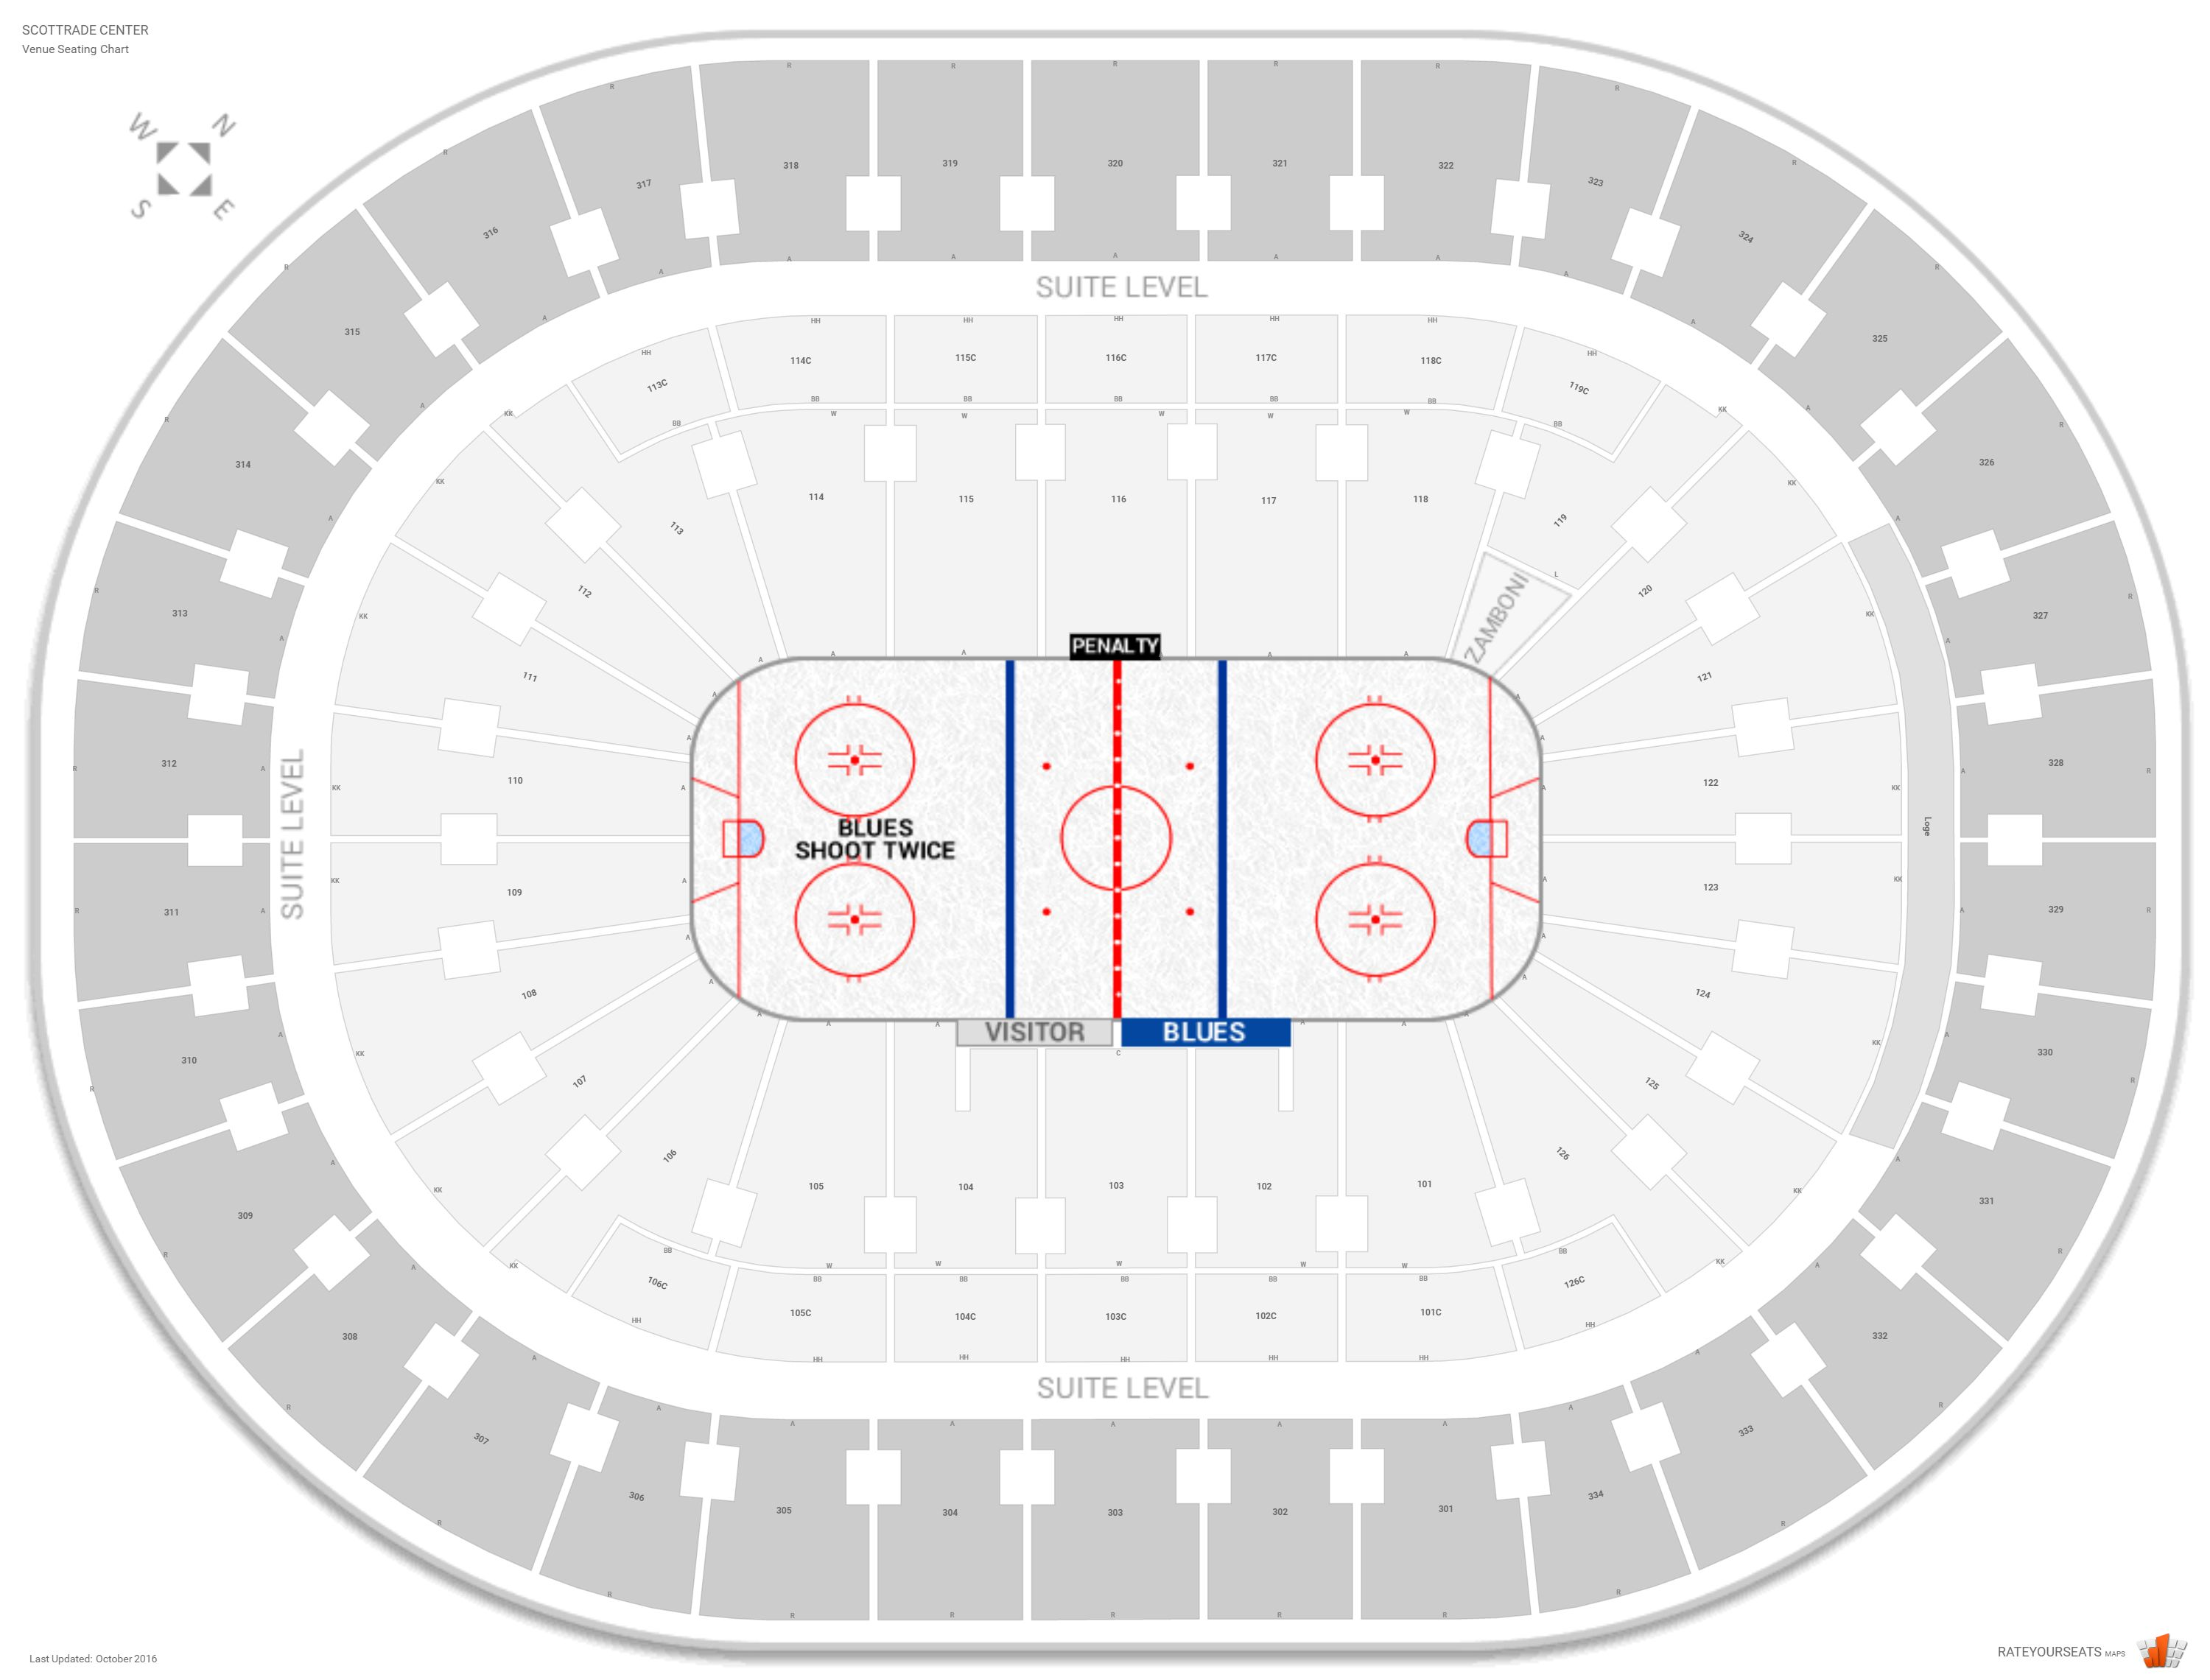 Scottrade Center Seating Chart with Row Numbers